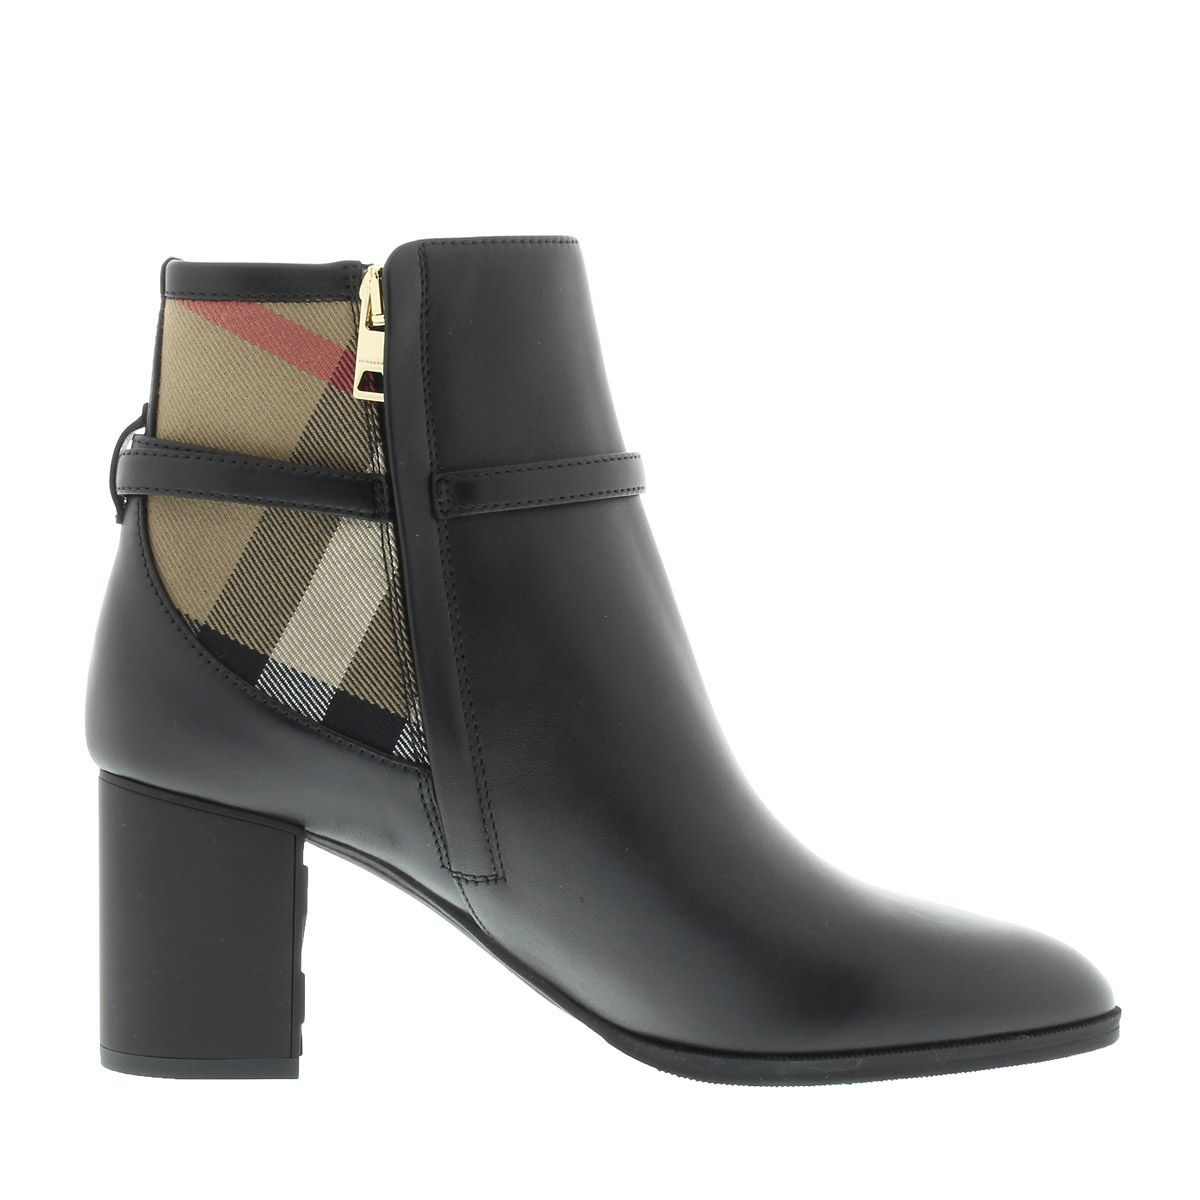 Burberry Stebbingford 70 Ankle Boot Housecheck Chain Black Boots & Booties…